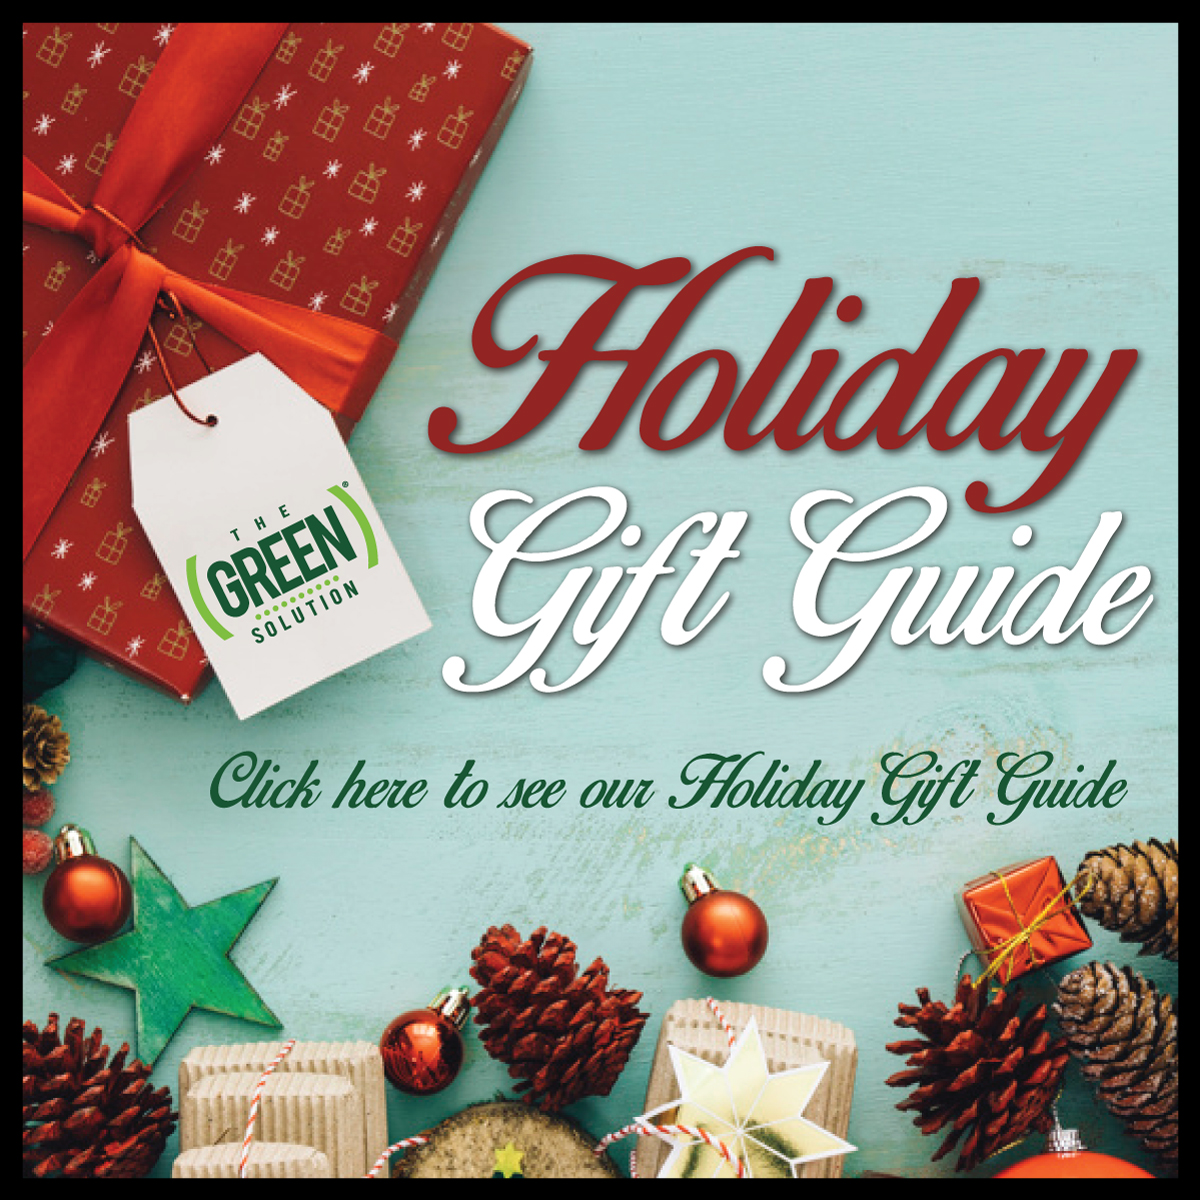 Holiday Gift Guide by The Green Solution